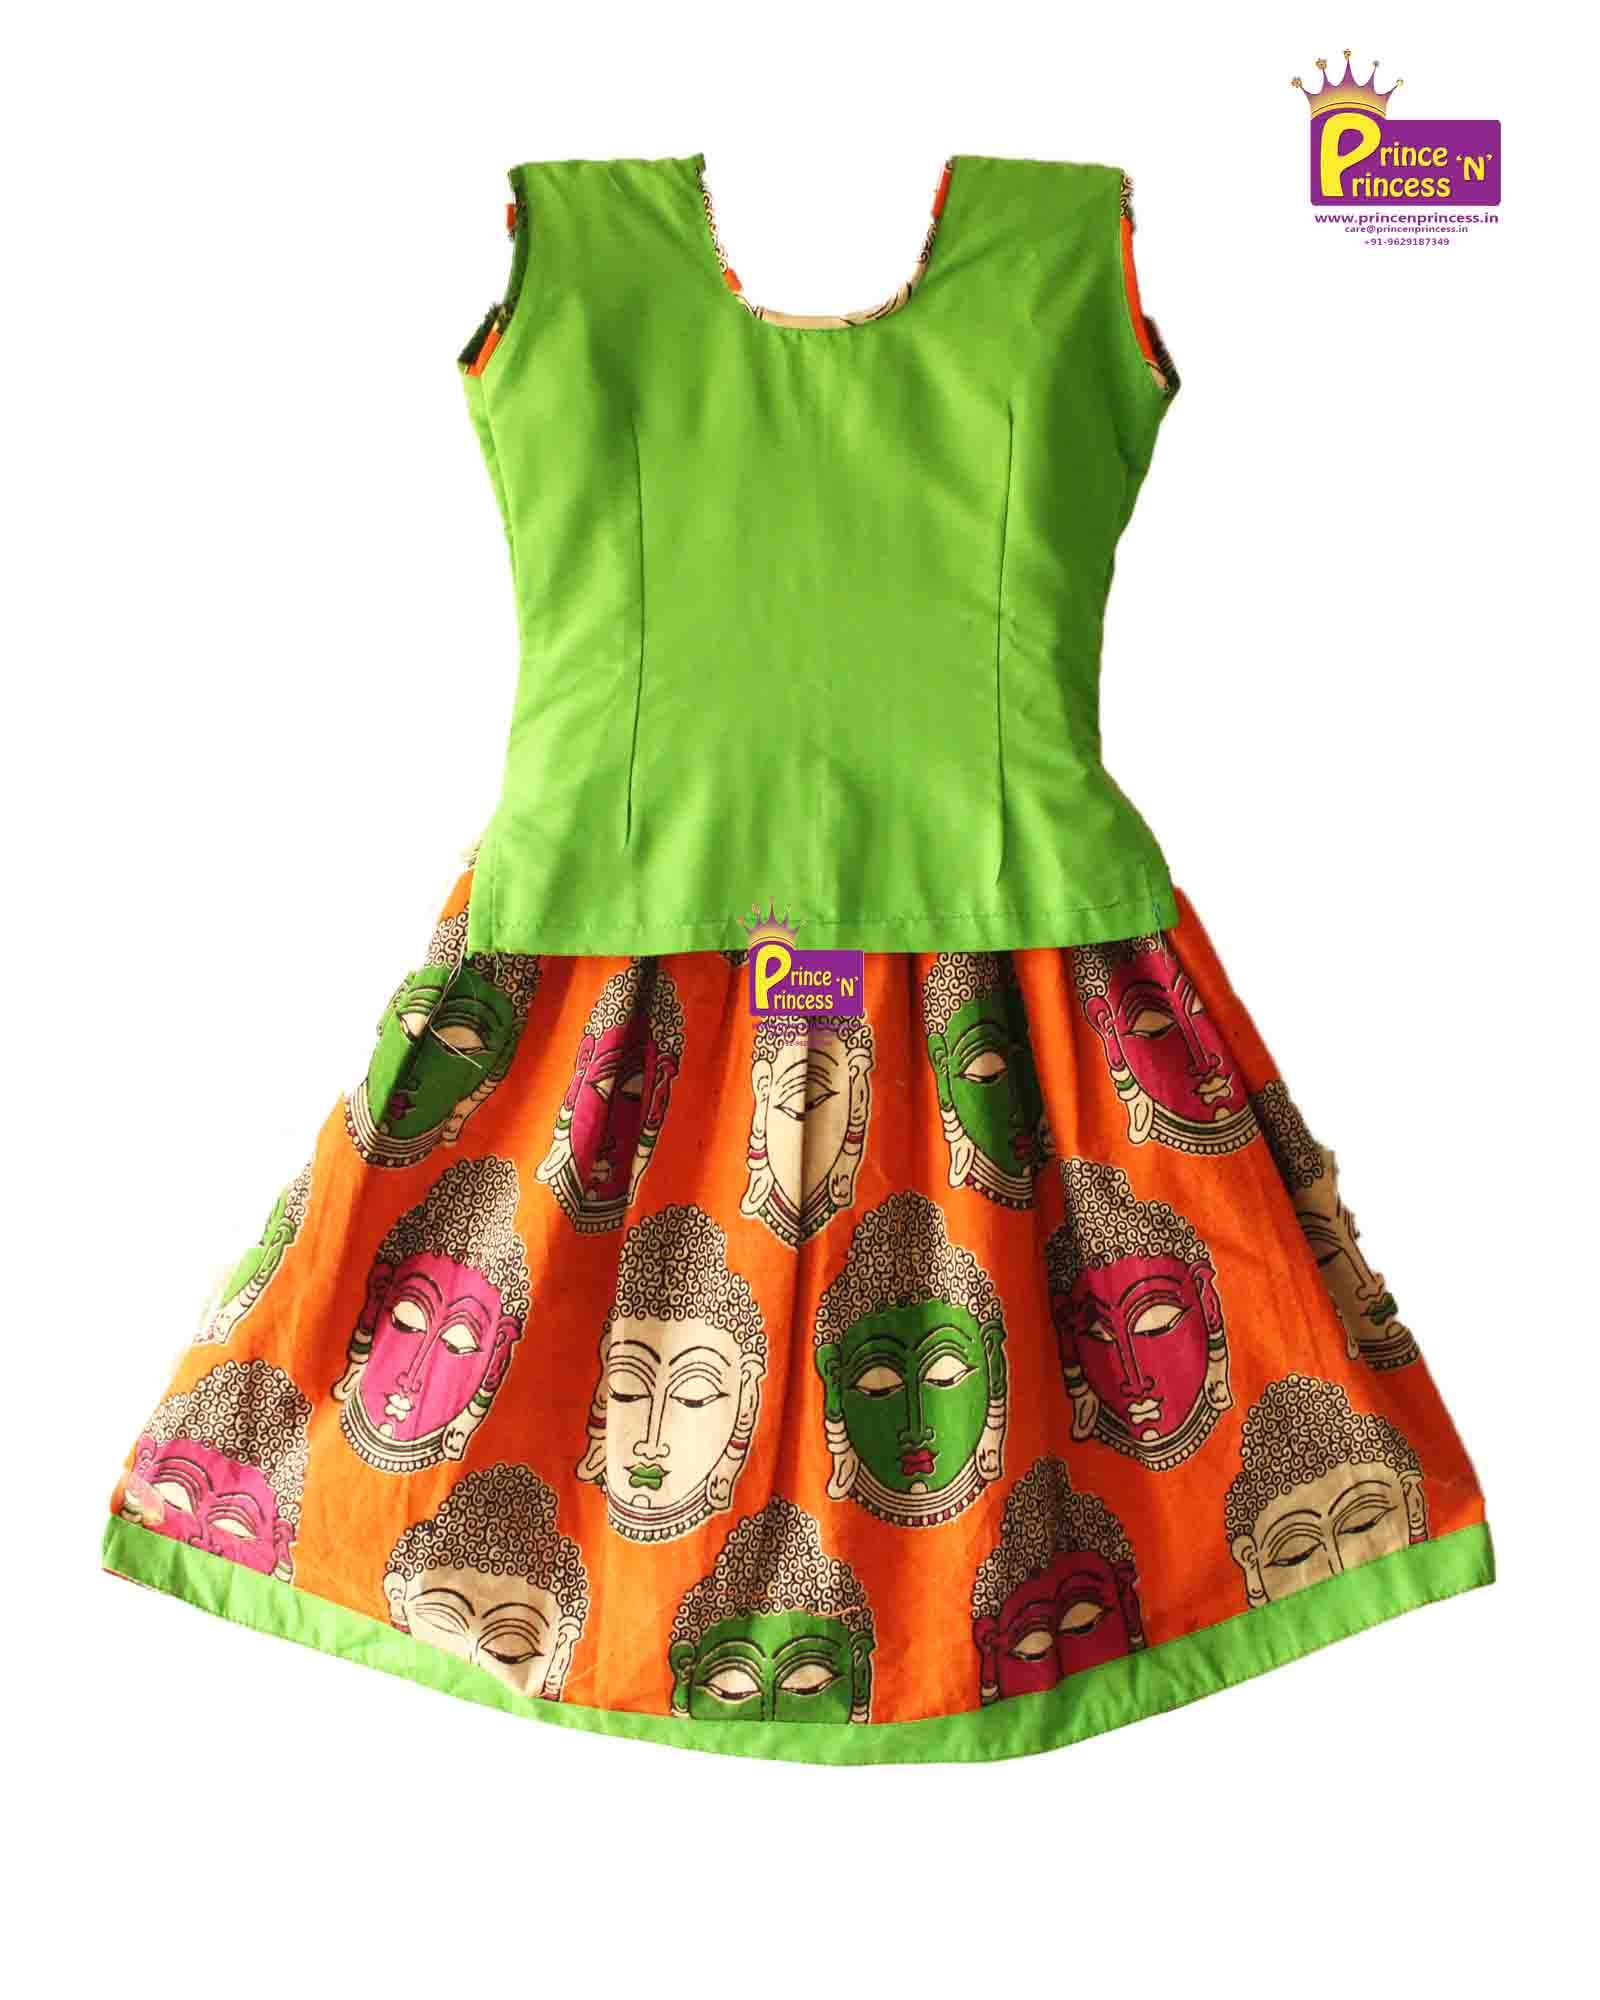 Kids green orange kalamkari pavadai langa with international